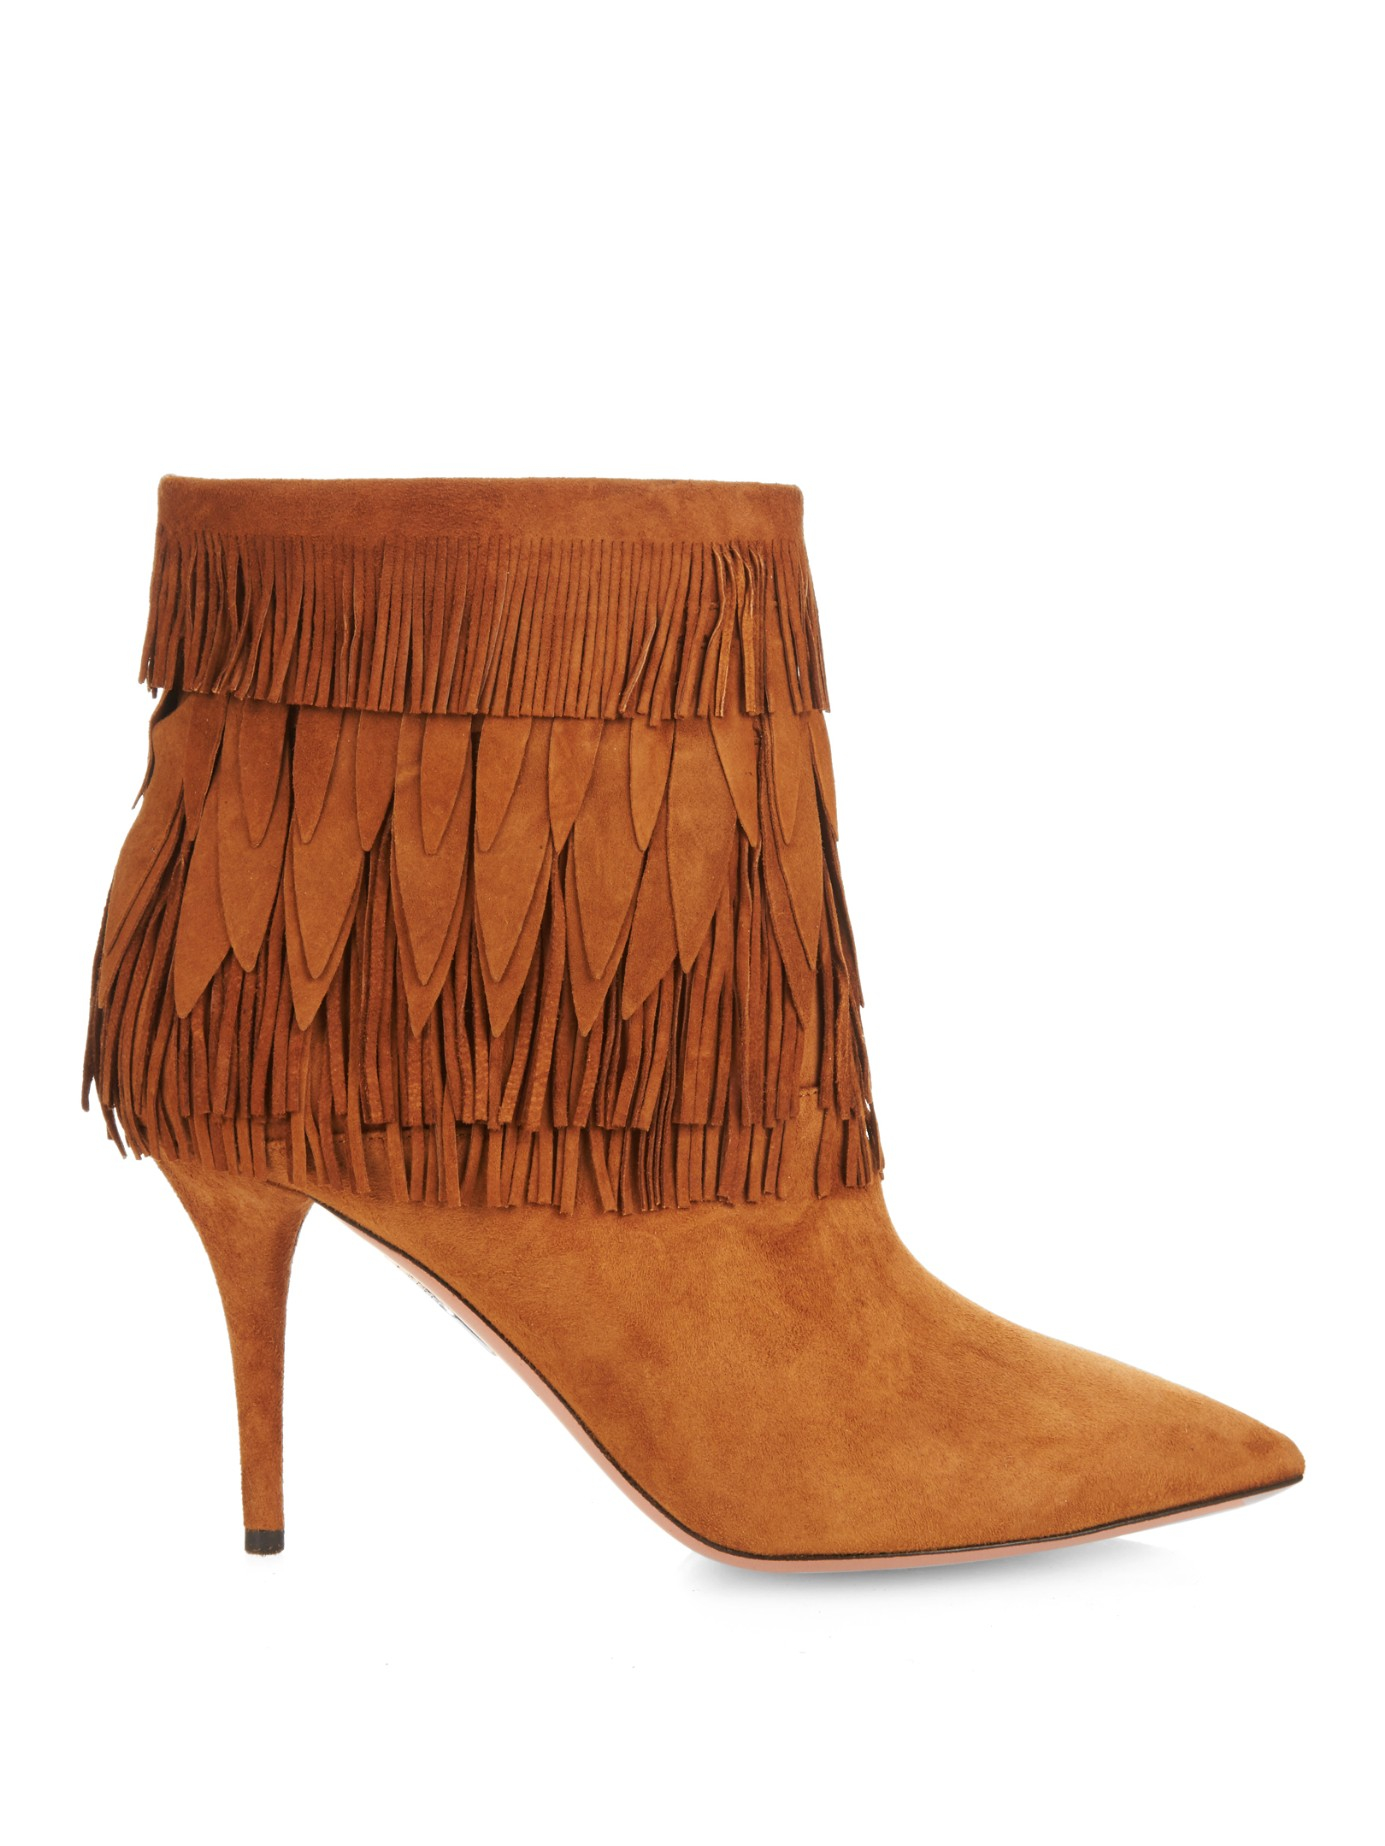 Aquazzura Fringe Ankle Boots discount outlet store h1KLwUOiS